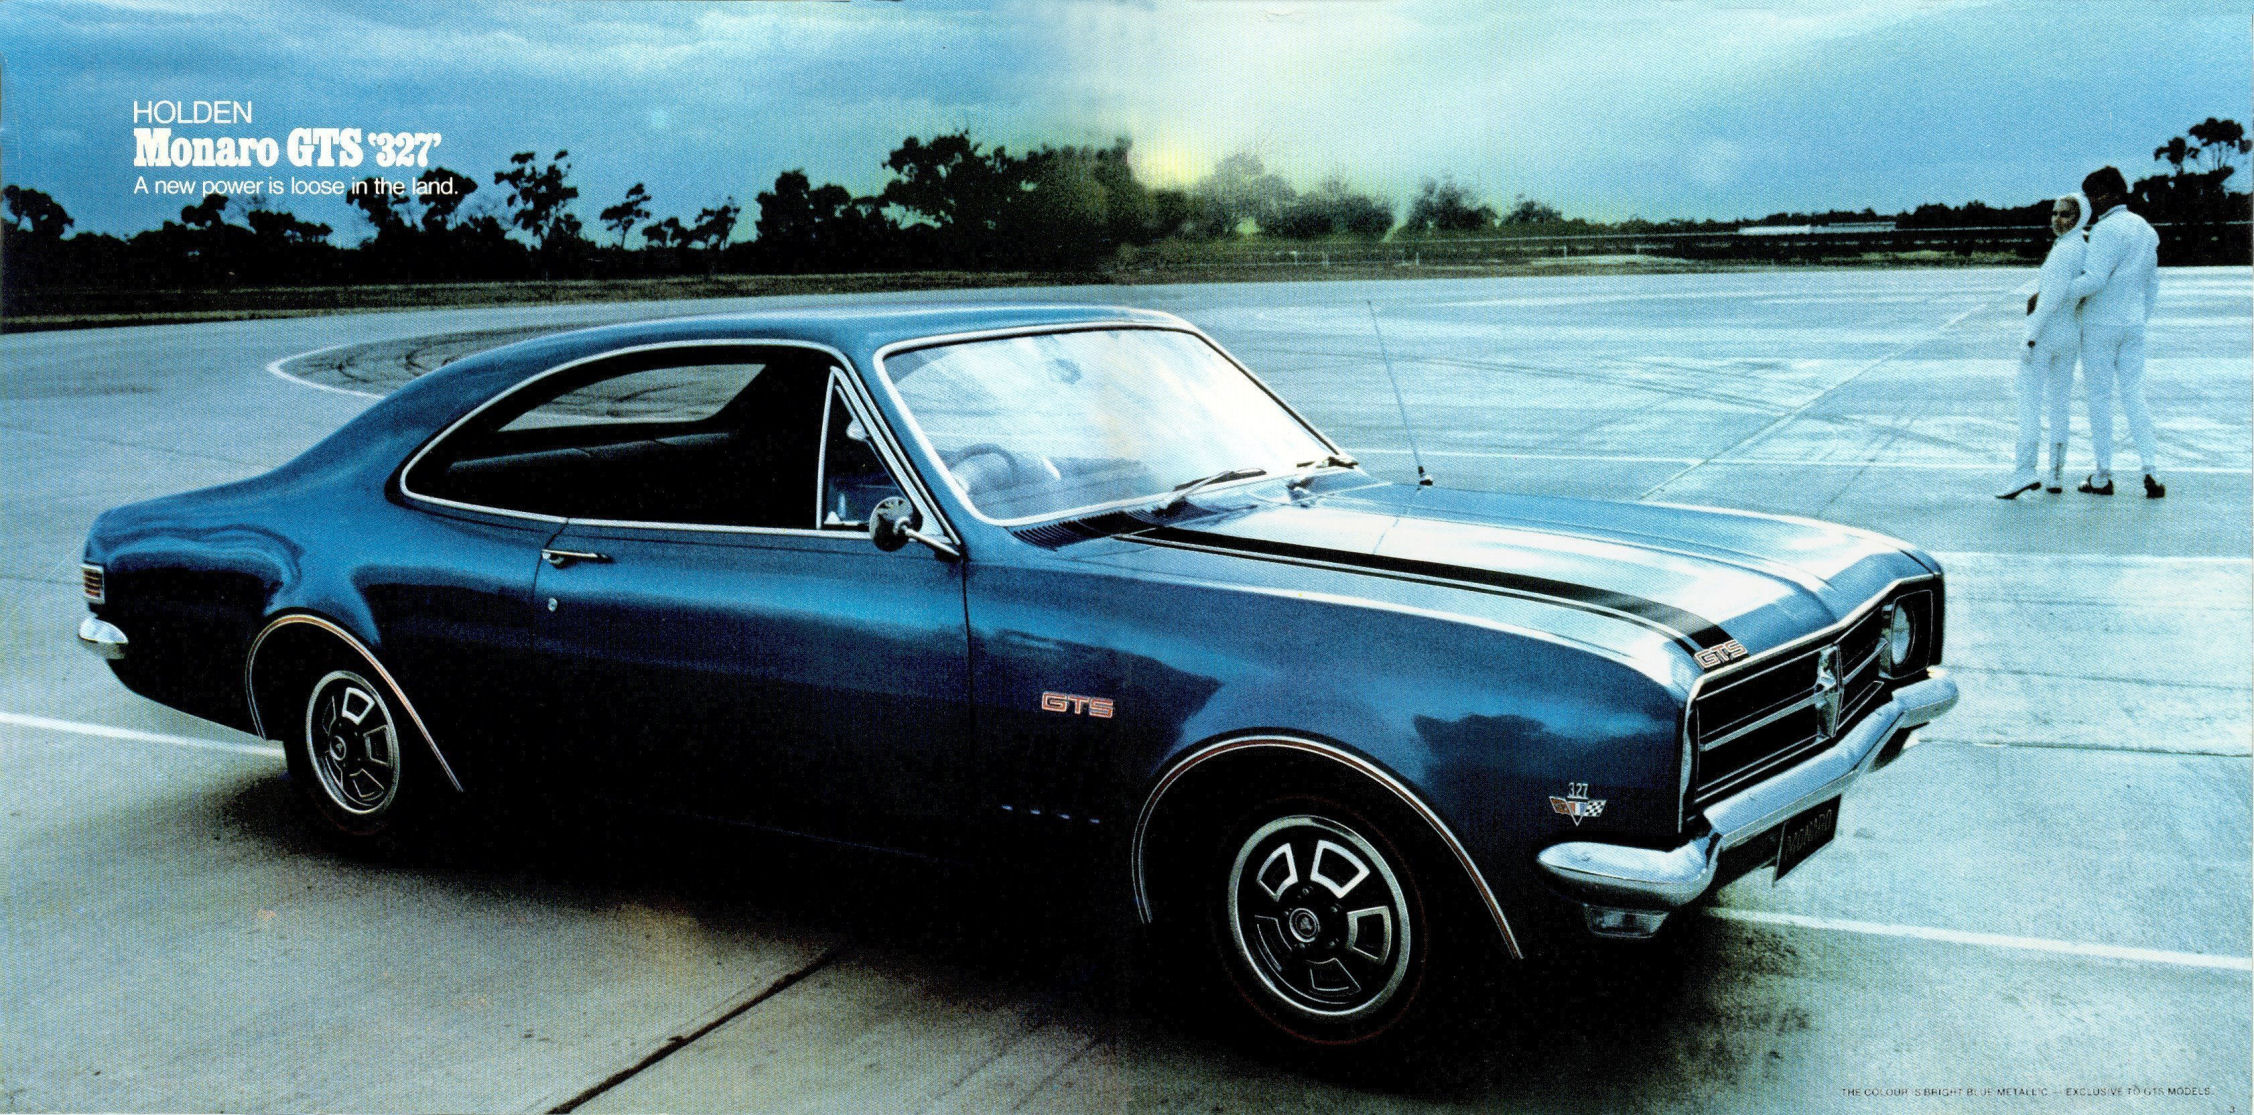 HK Monaro GTS 327 - a new power is loose in the land